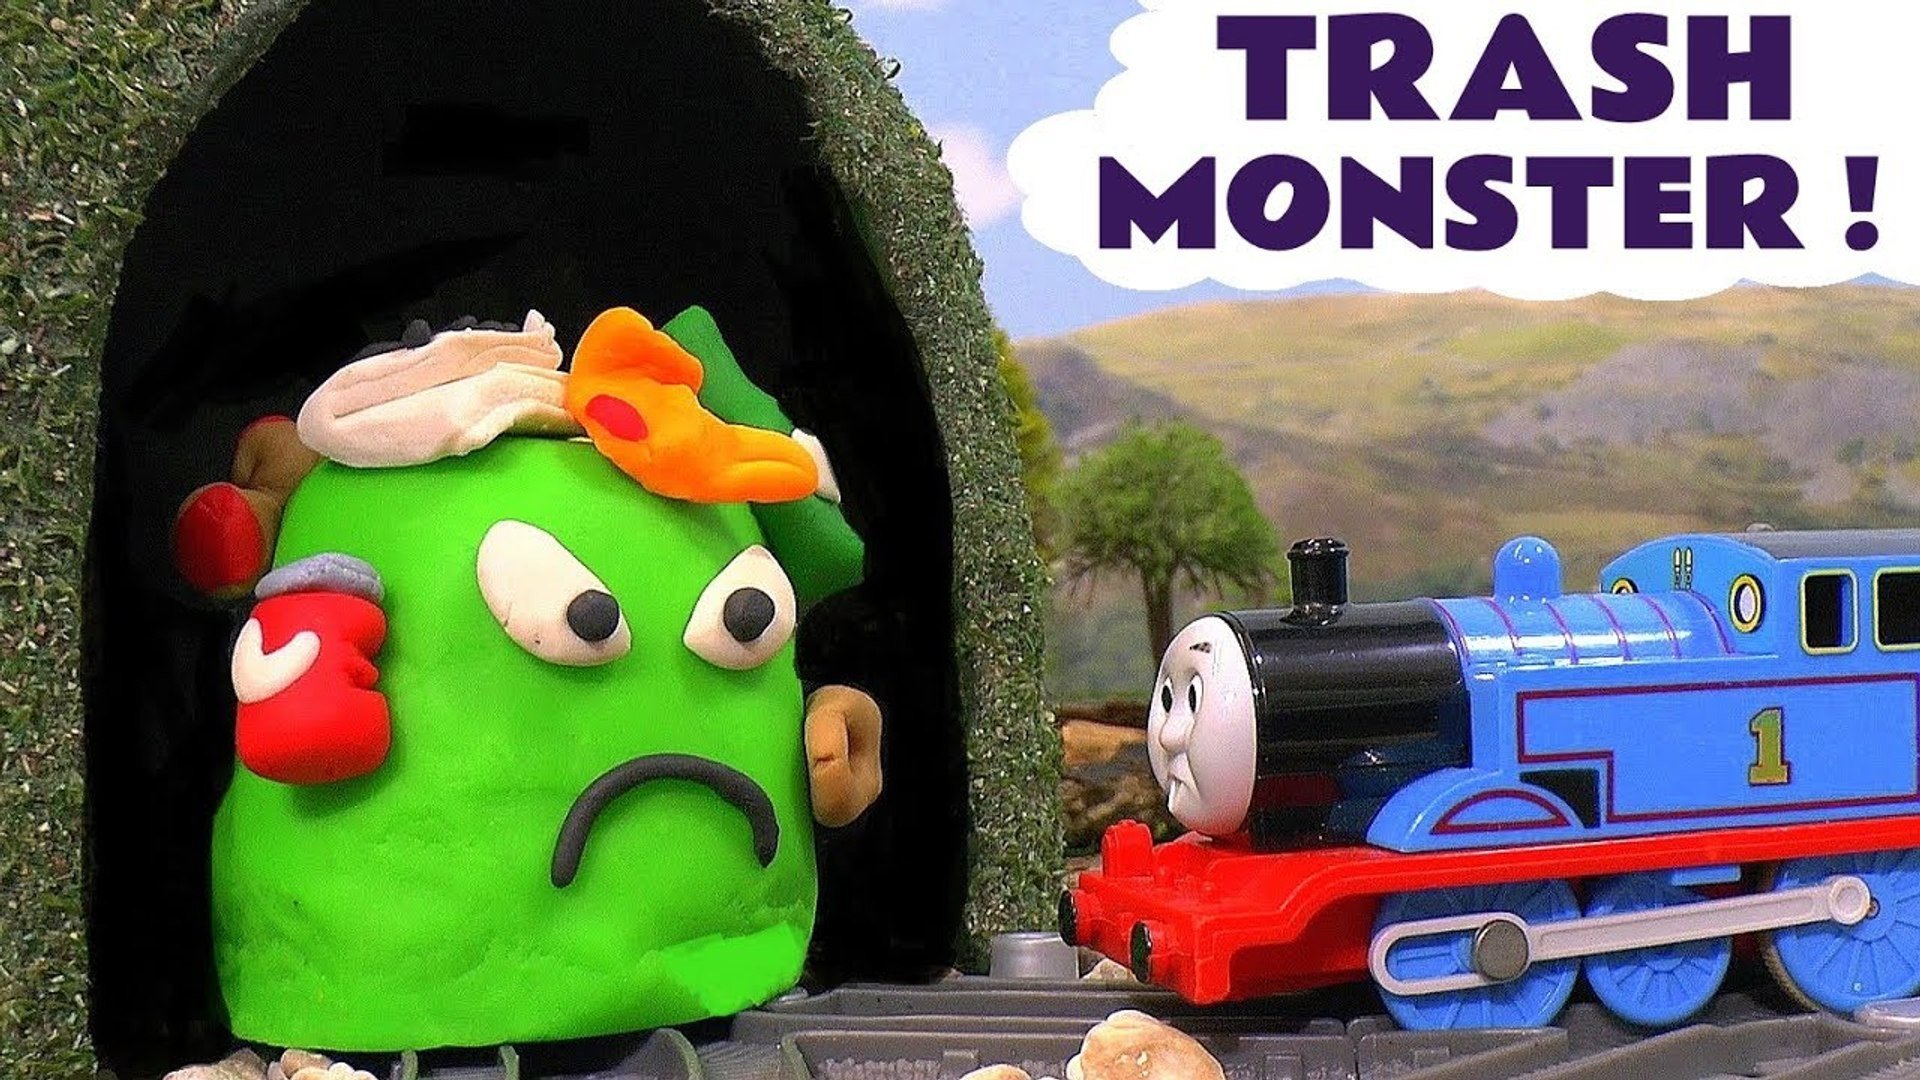 Thomas and Friends Toy Trains Story - The Trash Monster -  A Play Doh fun toy story for kids